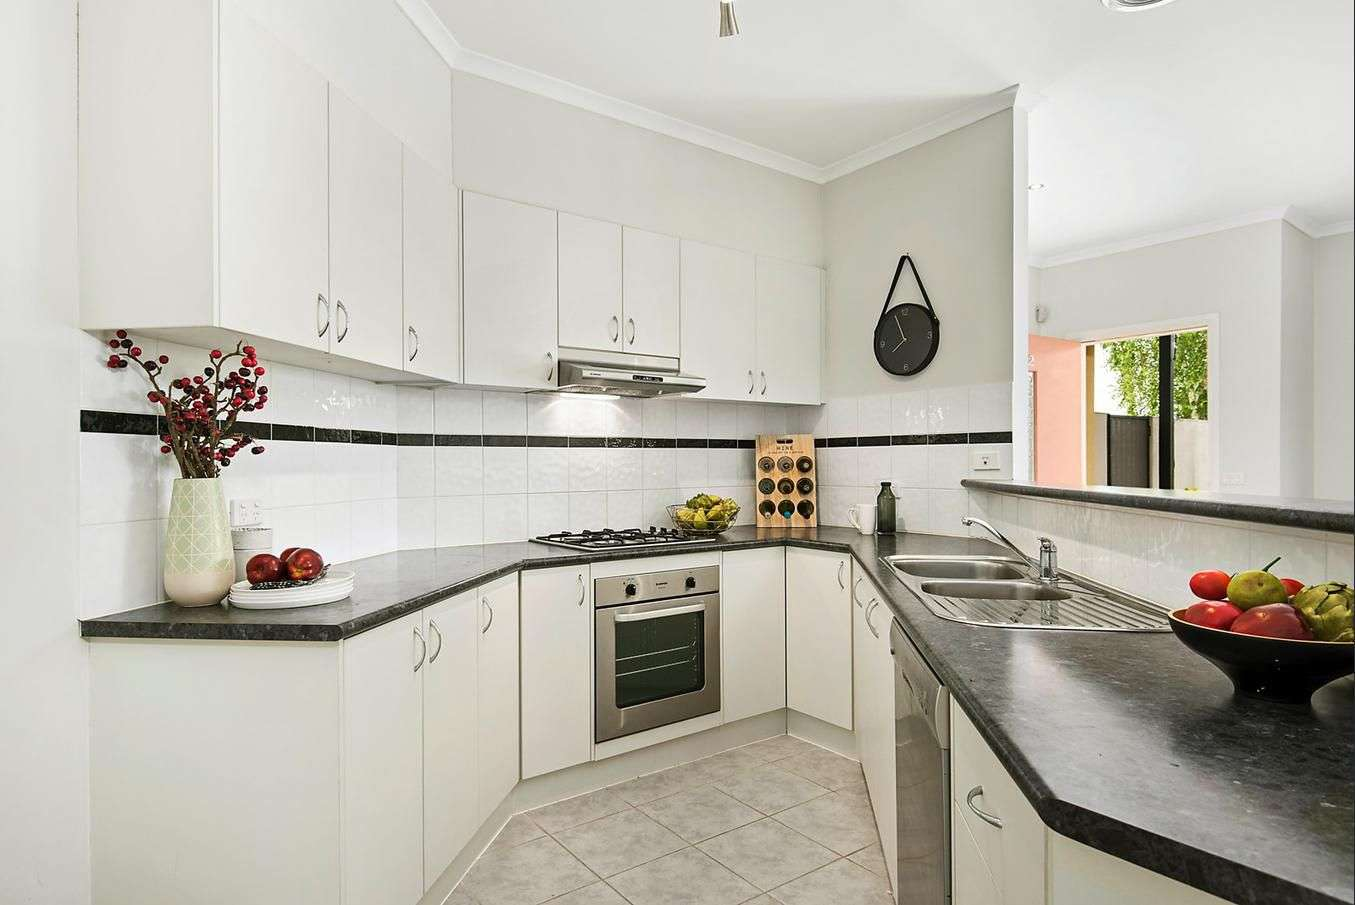 Main view of Homely unit listing, 2/20 Tulloch Grove, Glen Waverley, VIC 3150